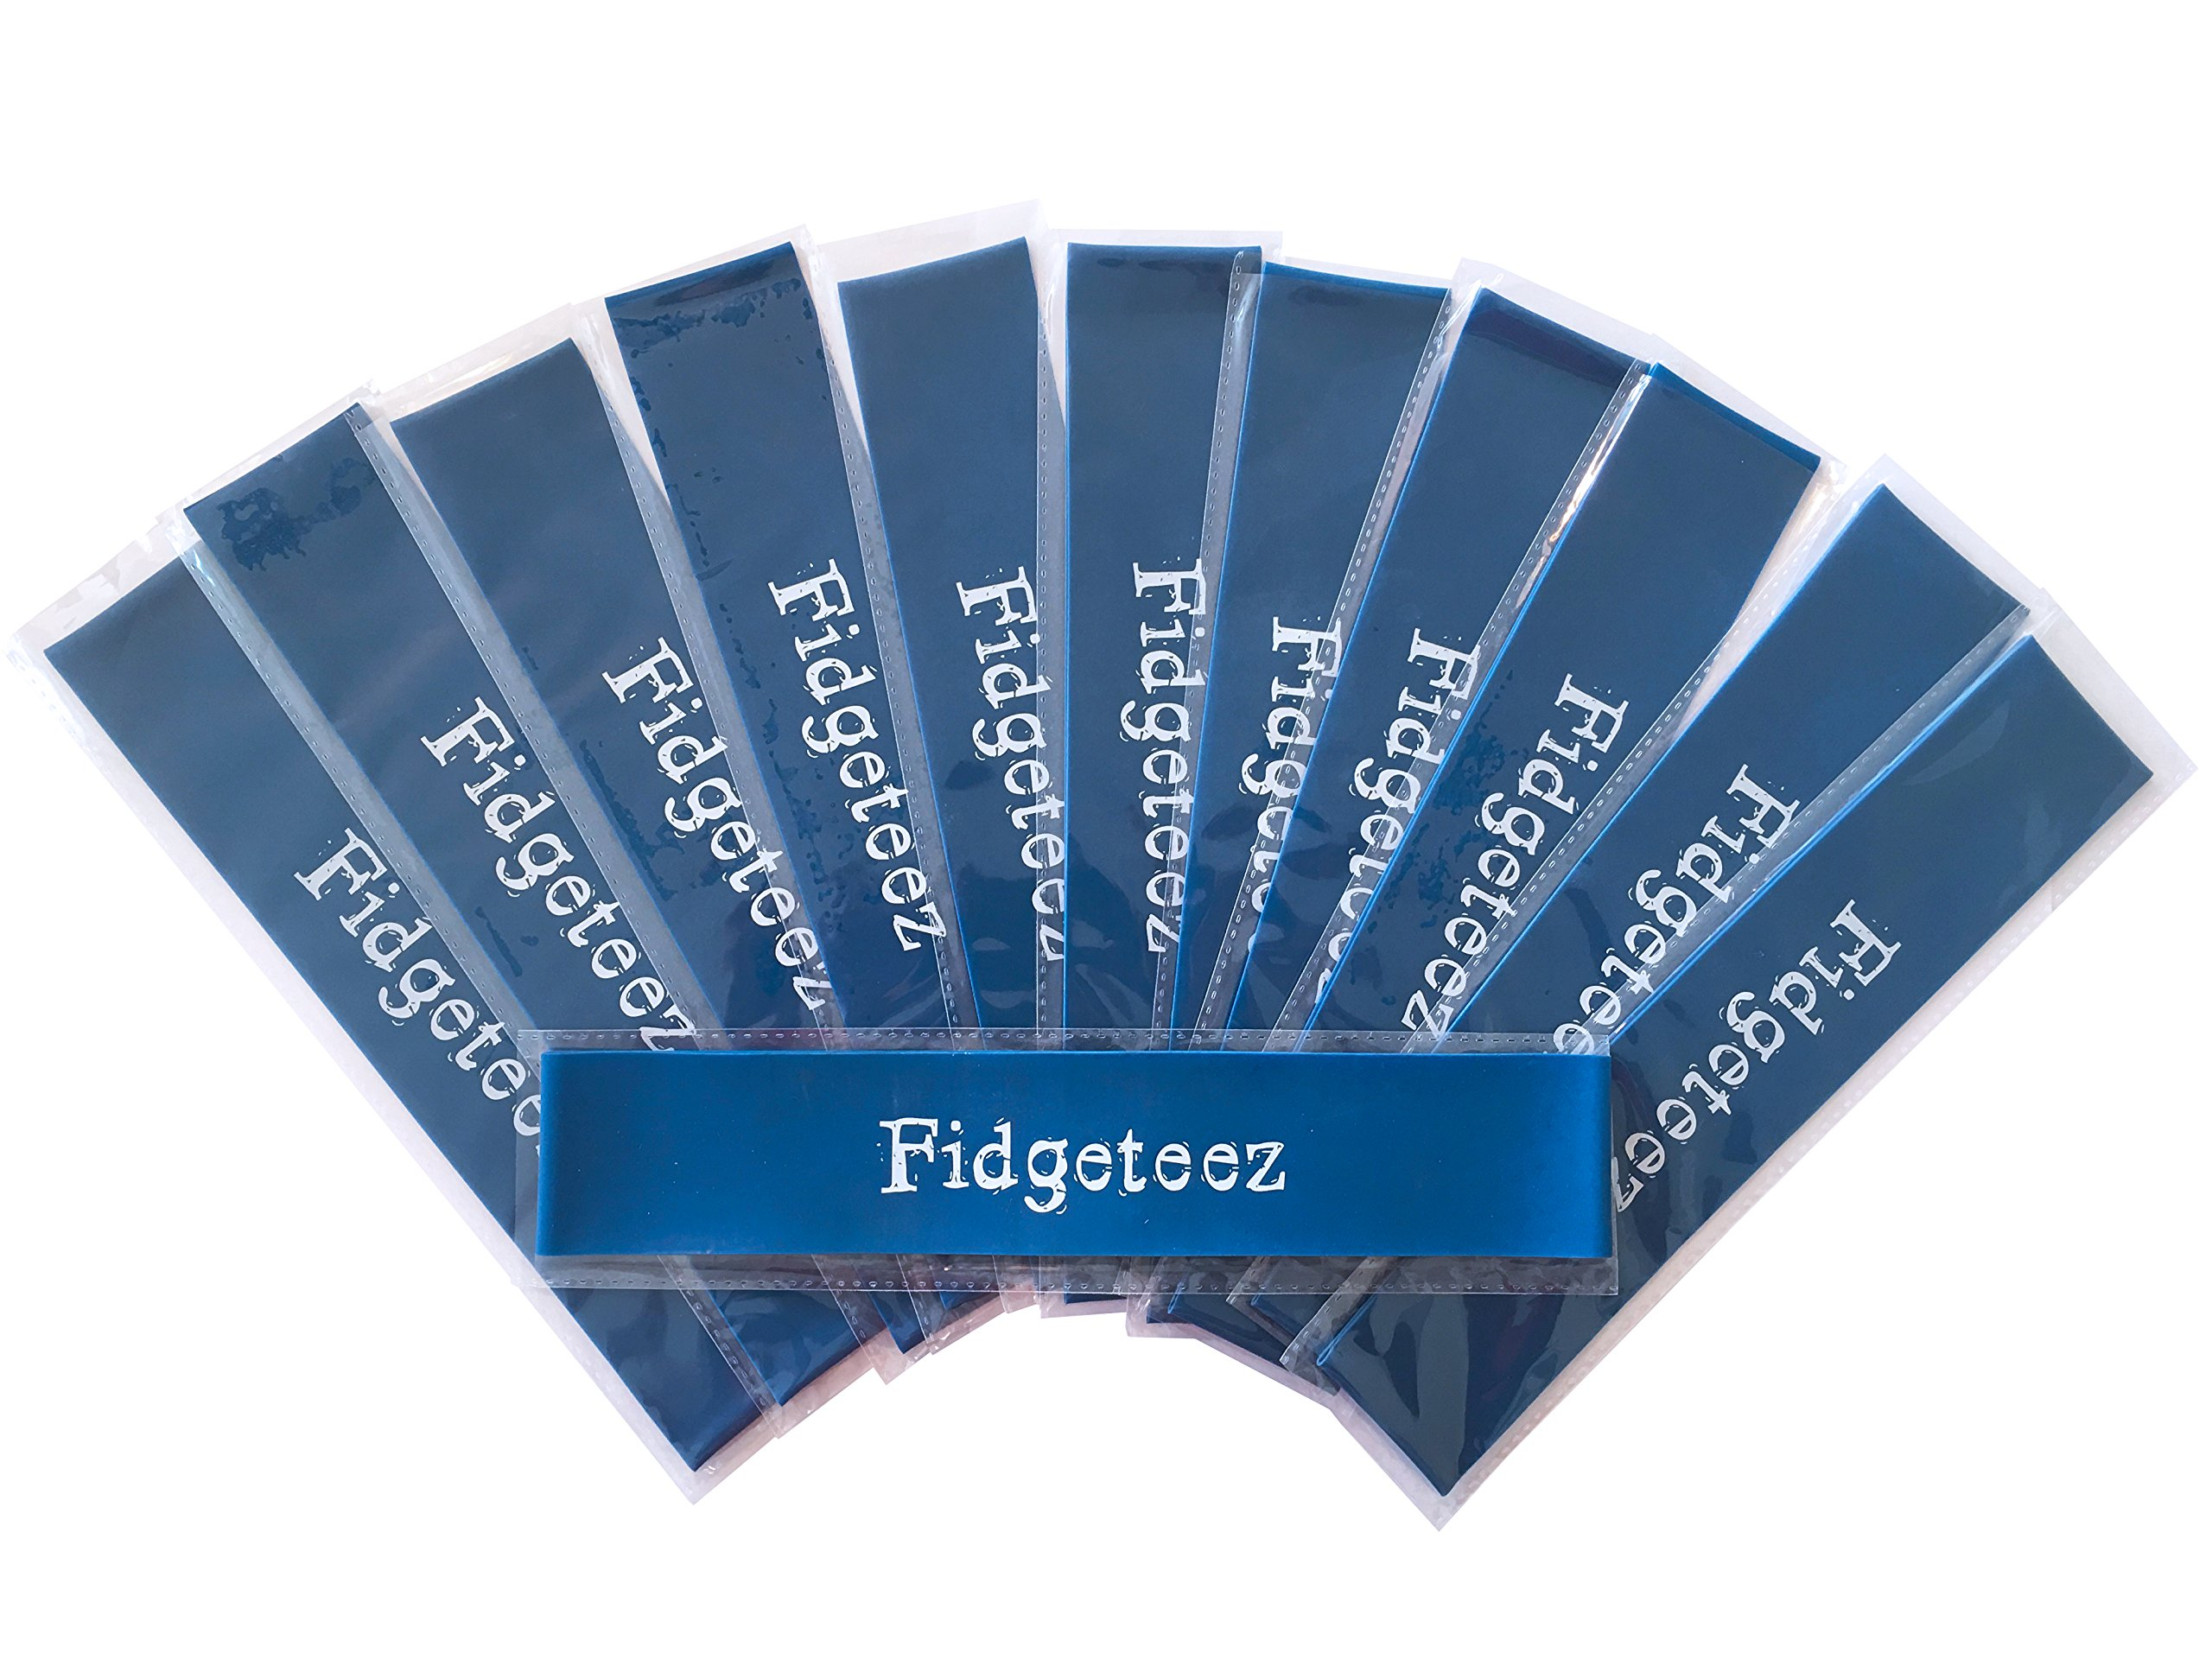 Fidgeteez Set of 12 Chair Bands. Helps Improve Focus in the Classroom. Bounce or Stretch the Bands. Works for ADD, ADHD, Autism, and Sensory Needs. Silent and Non-Disruptive.